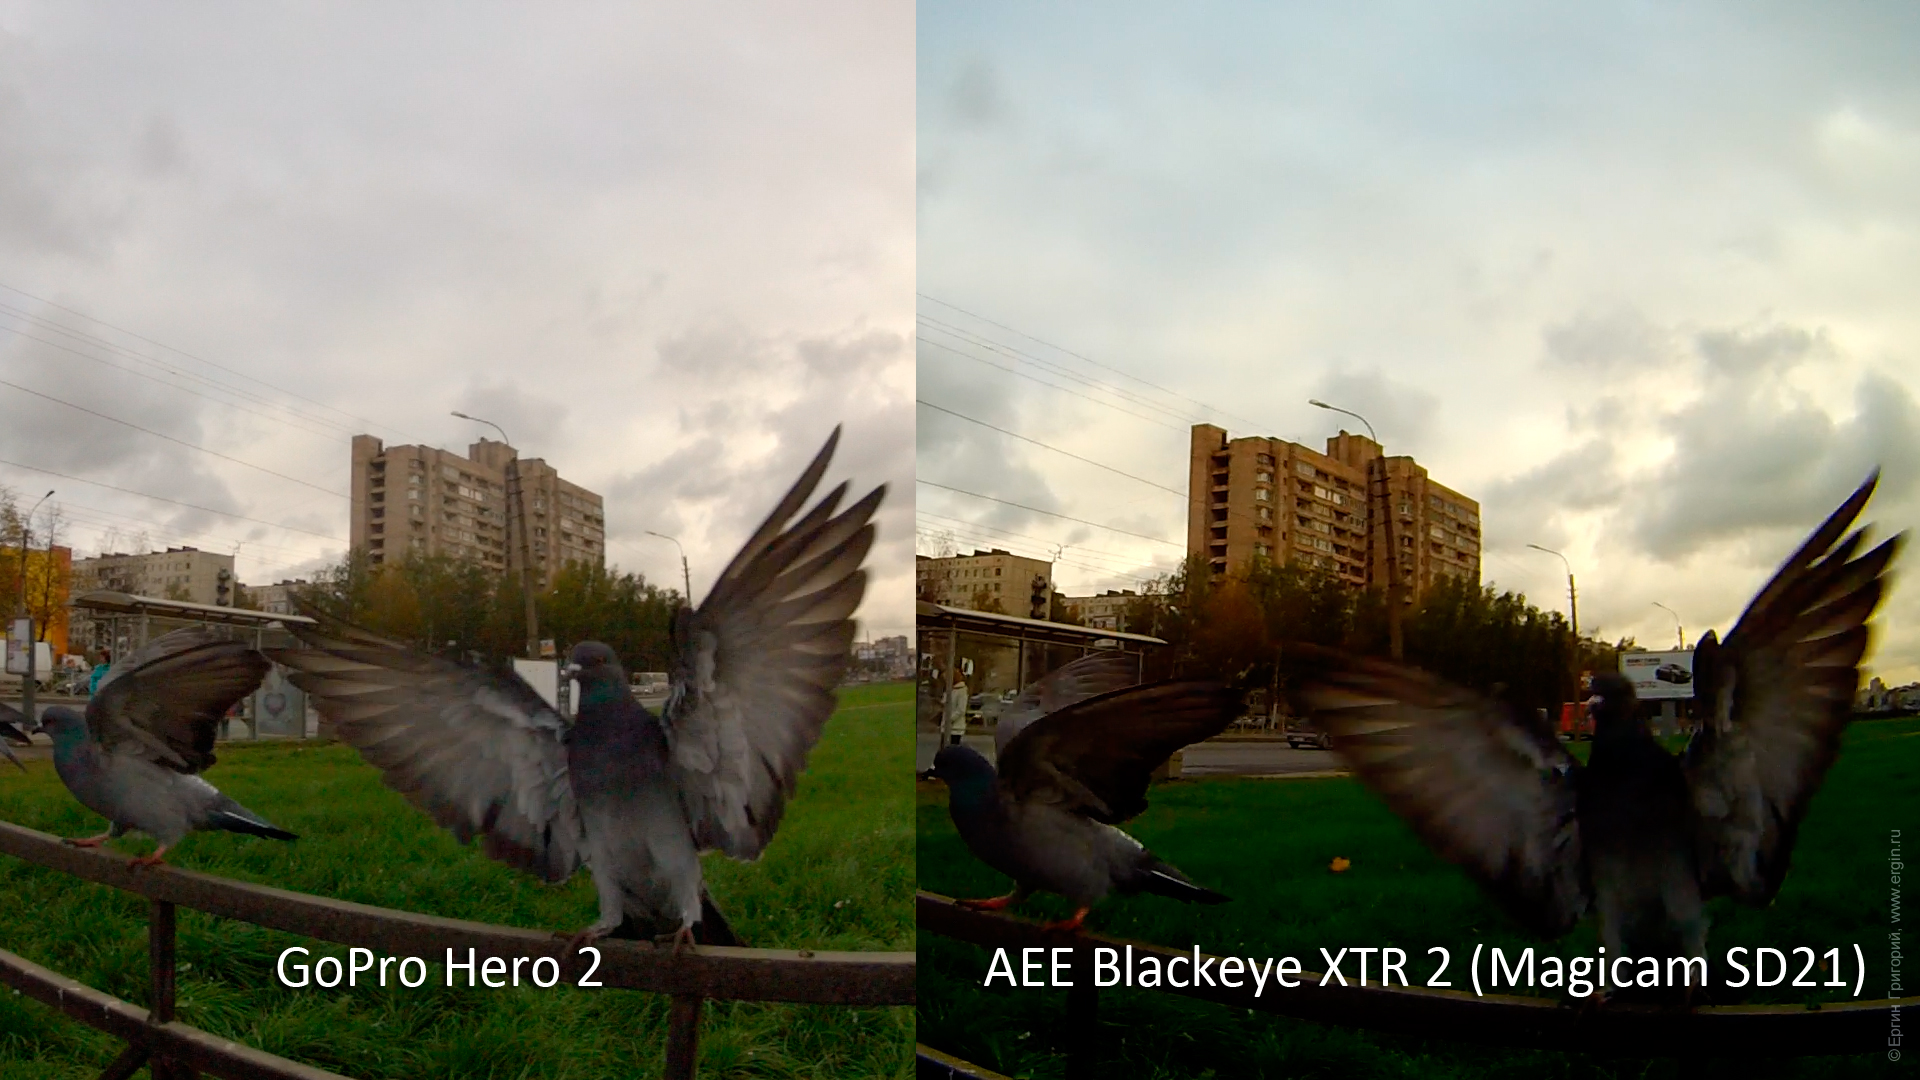 AEE Blackeye XTR 2 (AEE Magicam SD21) vs GoPro Hero 2: голубь, качество видео